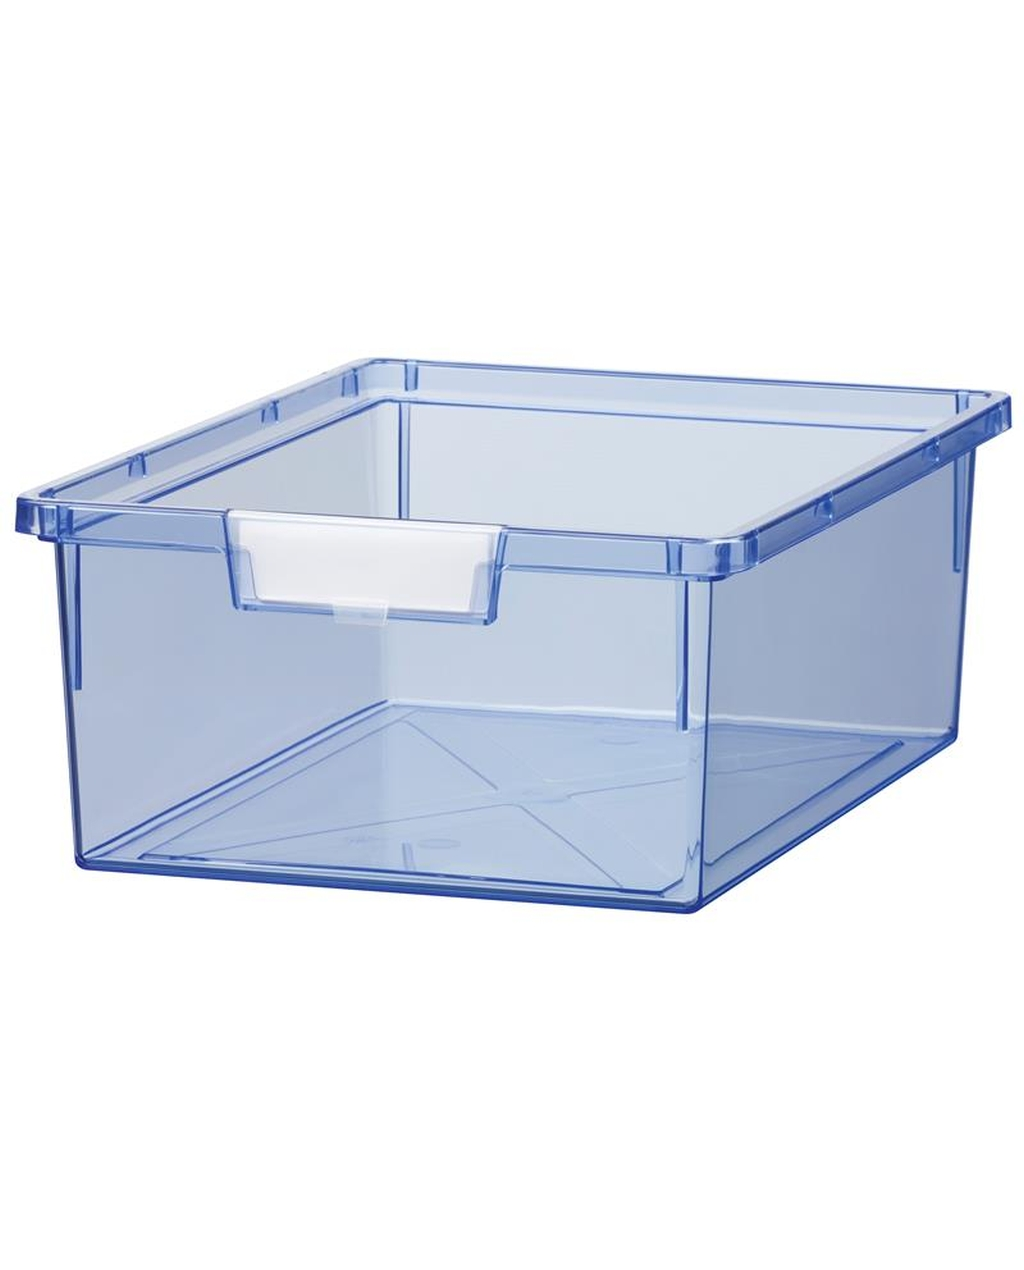 Shatterproof Double Depth Tray - Tint Blue